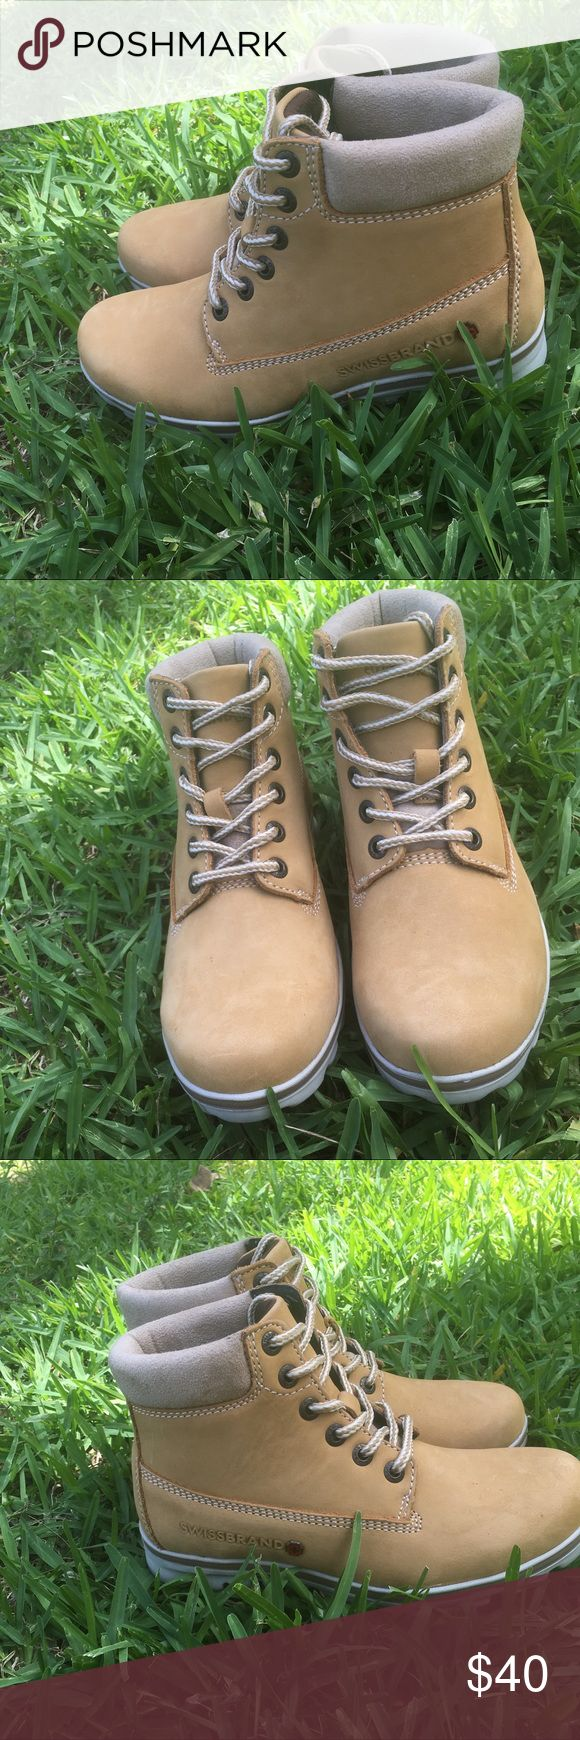 Swiss brand women hiking boots Brand new, never worn. swissBRAND Shoes Lace Up Boots